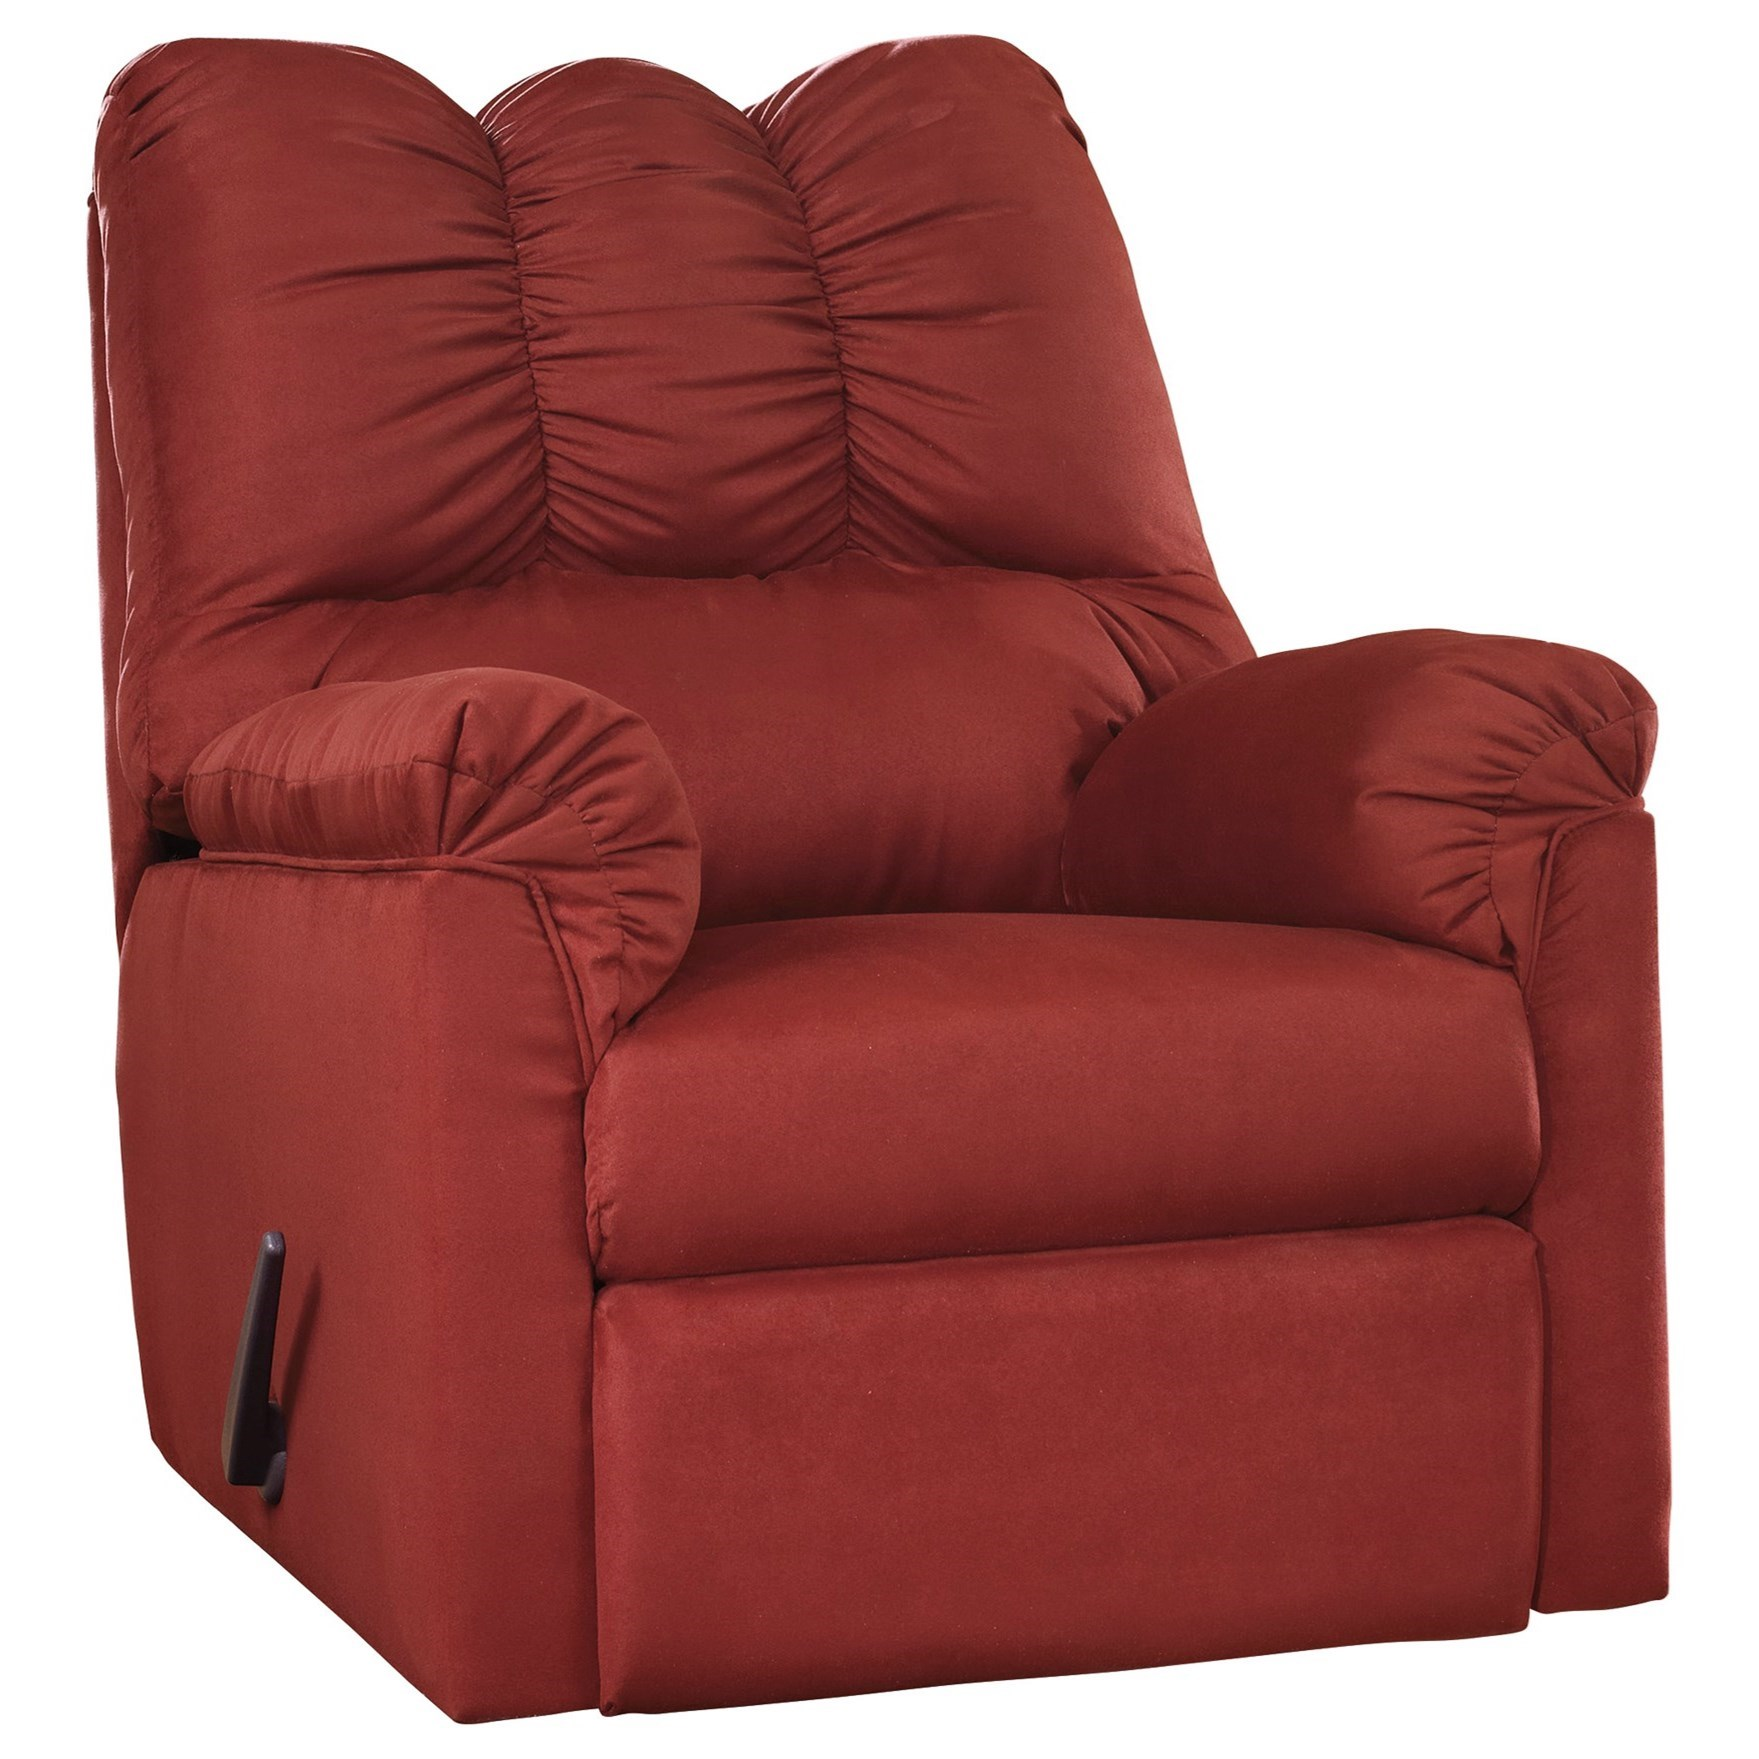 Darcy - Salsa Darcy Rocker Recliner by Ashley at Morris Home